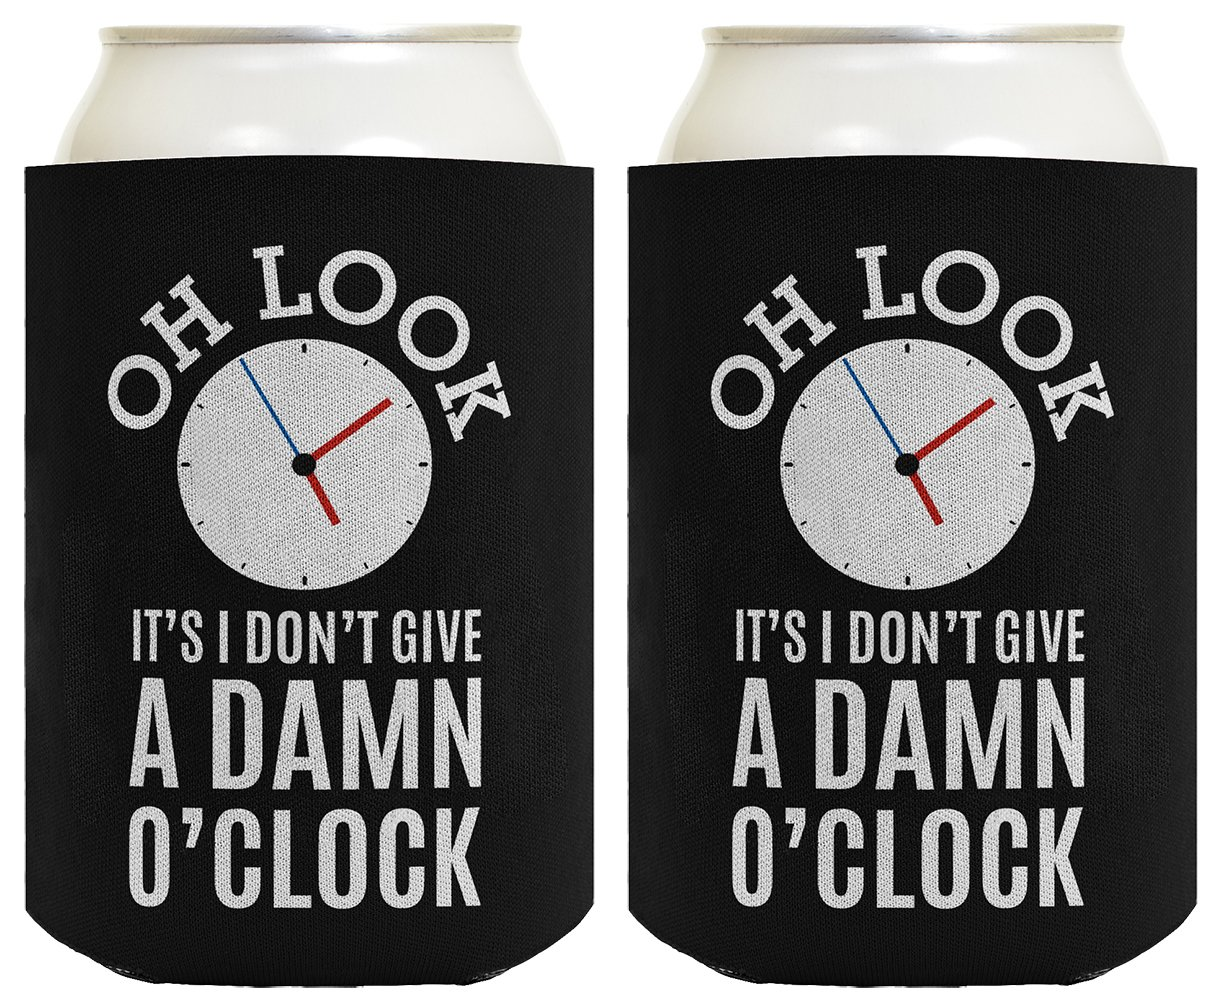 Funny Retirement Gifts for Men Oh Look It's I Don't Give a Damn O'Clock Retirement Gifts for Coworker Gag Gifts Retired Coworker 2 Pack Can Coolie Drink Coolers Coolies Black